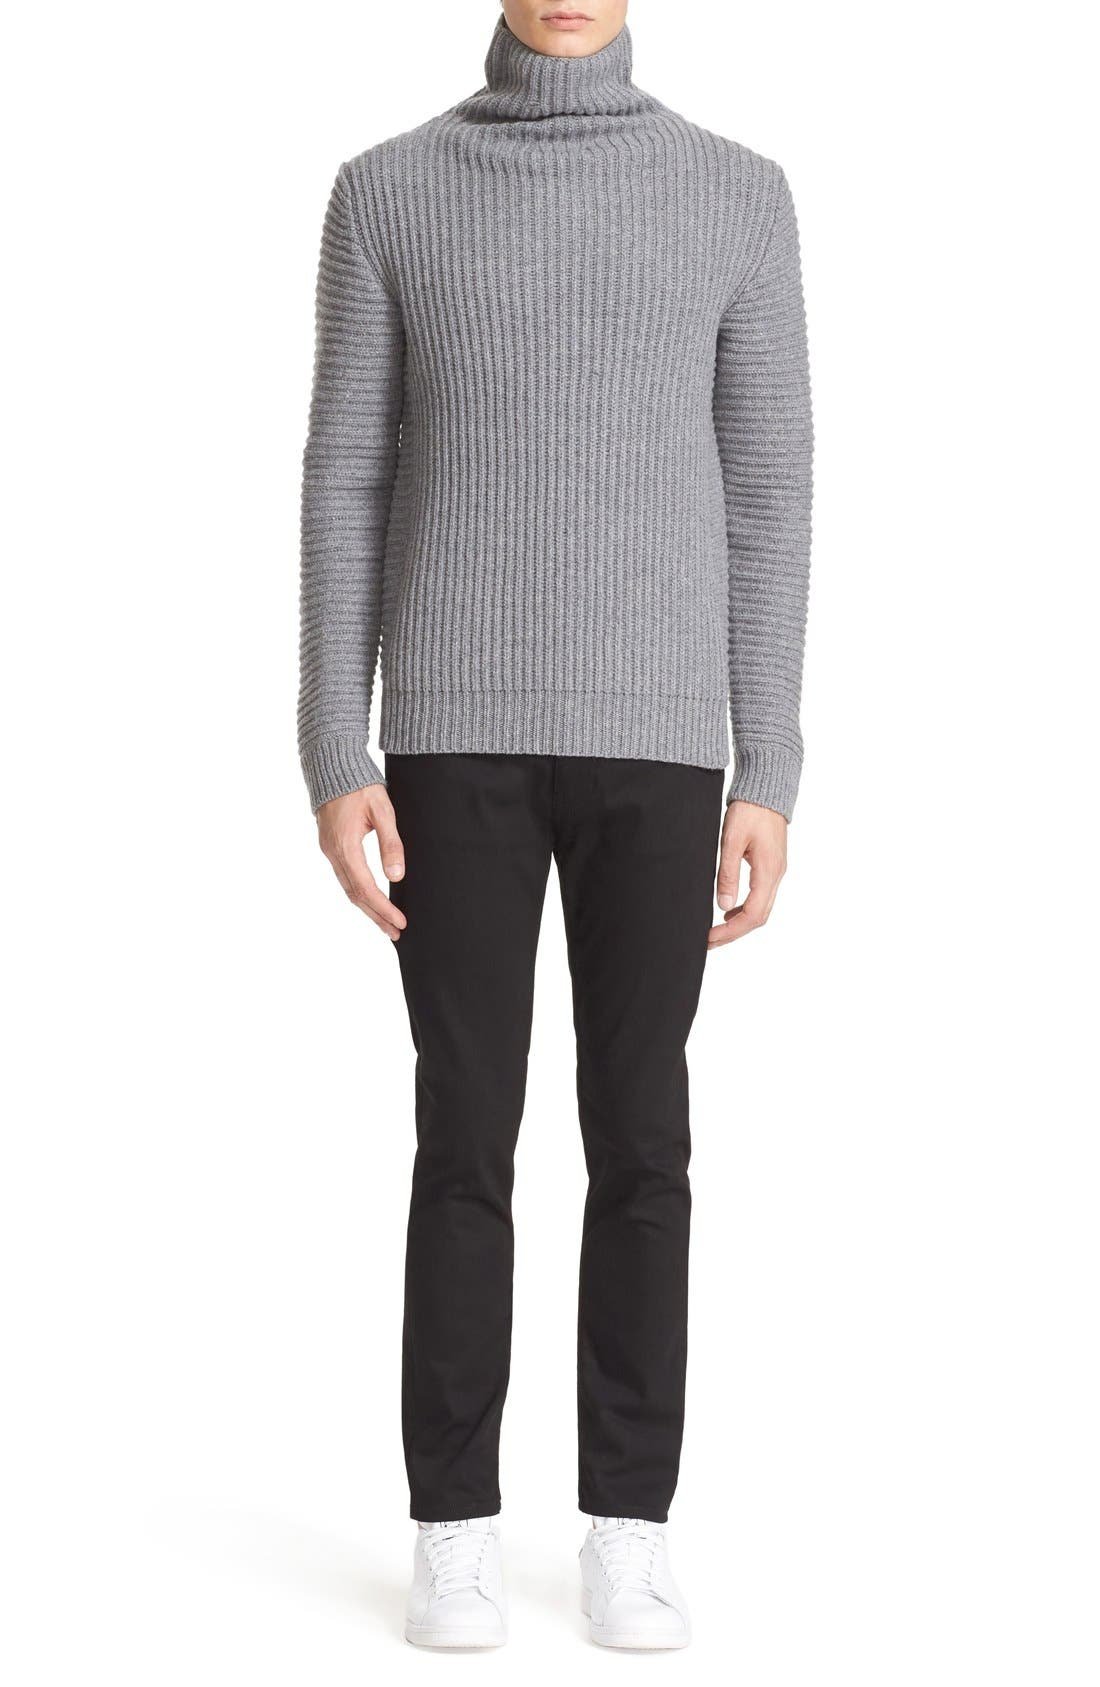 ACNE STUDIOS,                             Kalle Ribbed Turtleneck Sweater,                             Alternate thumbnail 3, color,                             020